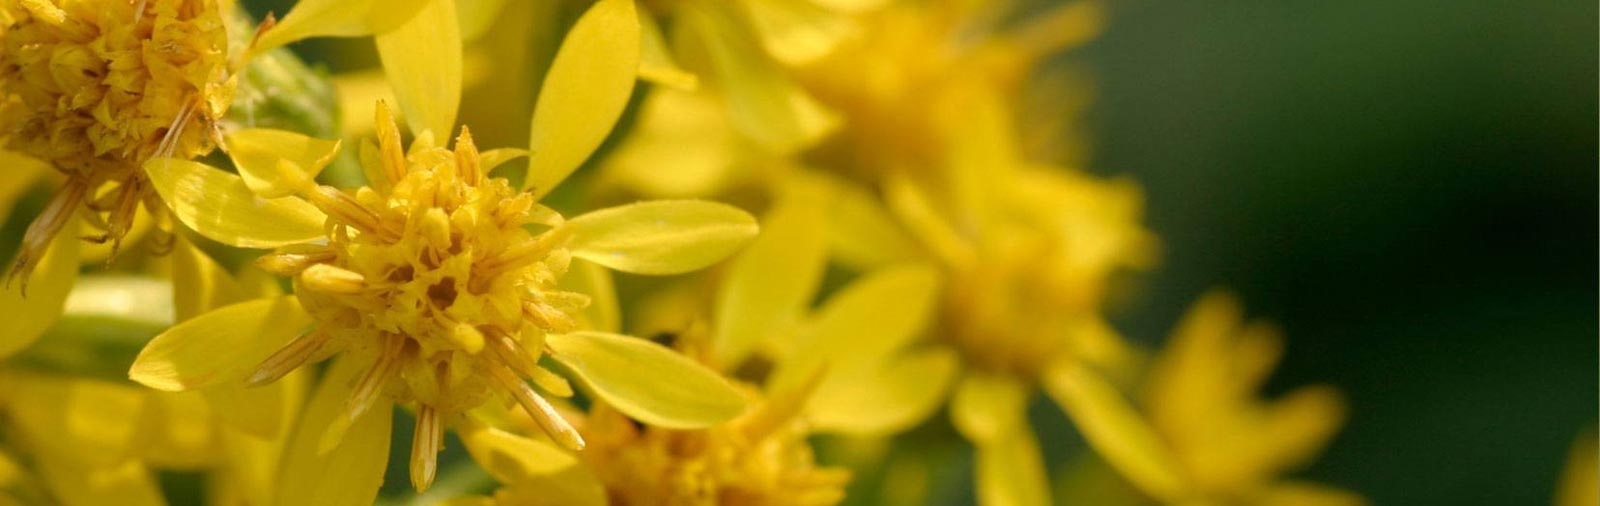 Goldenrod - Solidago virgaurea L.